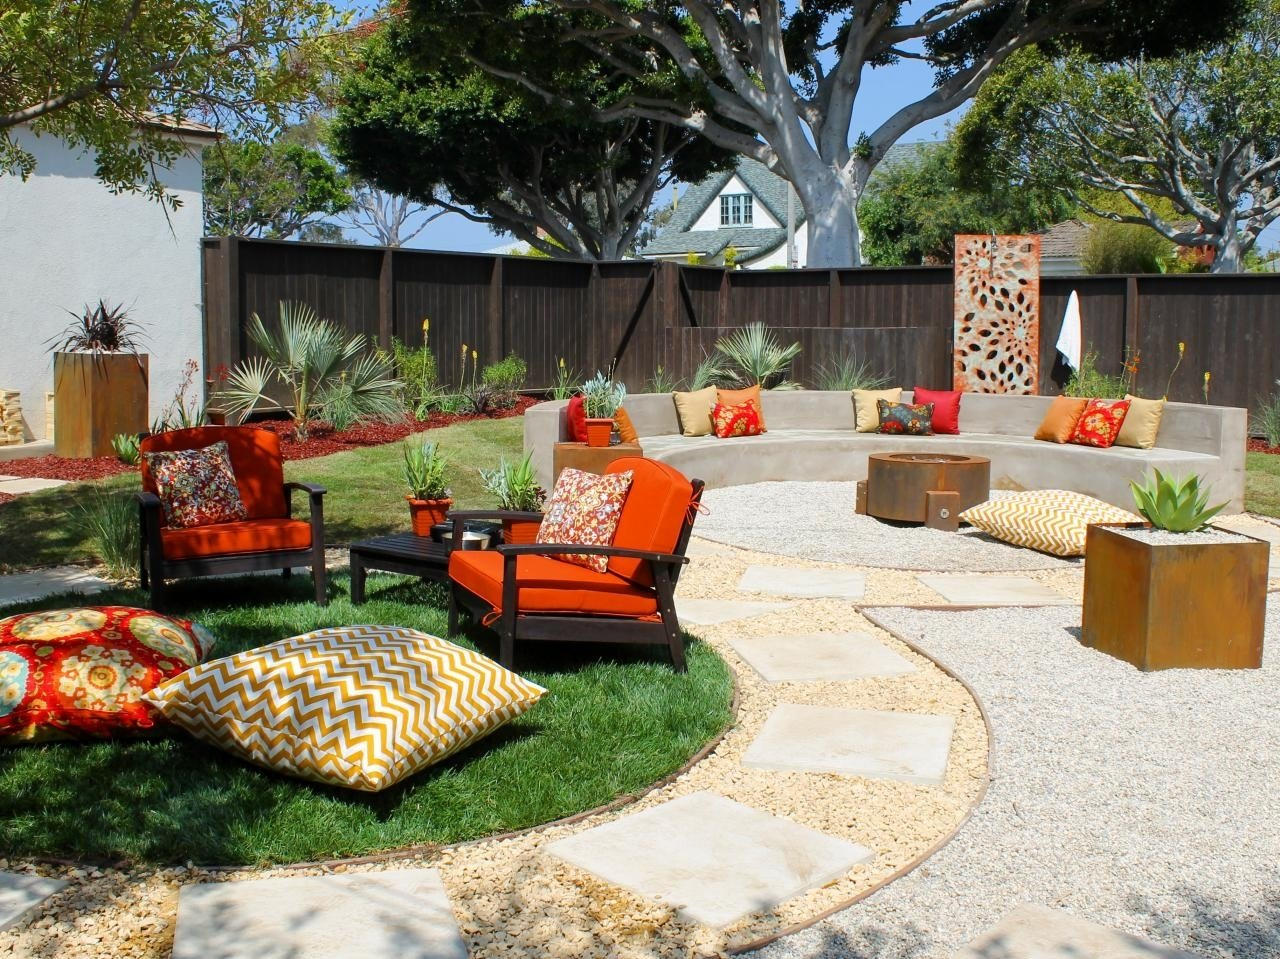 10 Perfect Patio Design Ideas With Fire Pits fire pit and outdoor fireplace ideas diy network made designs patio 2021